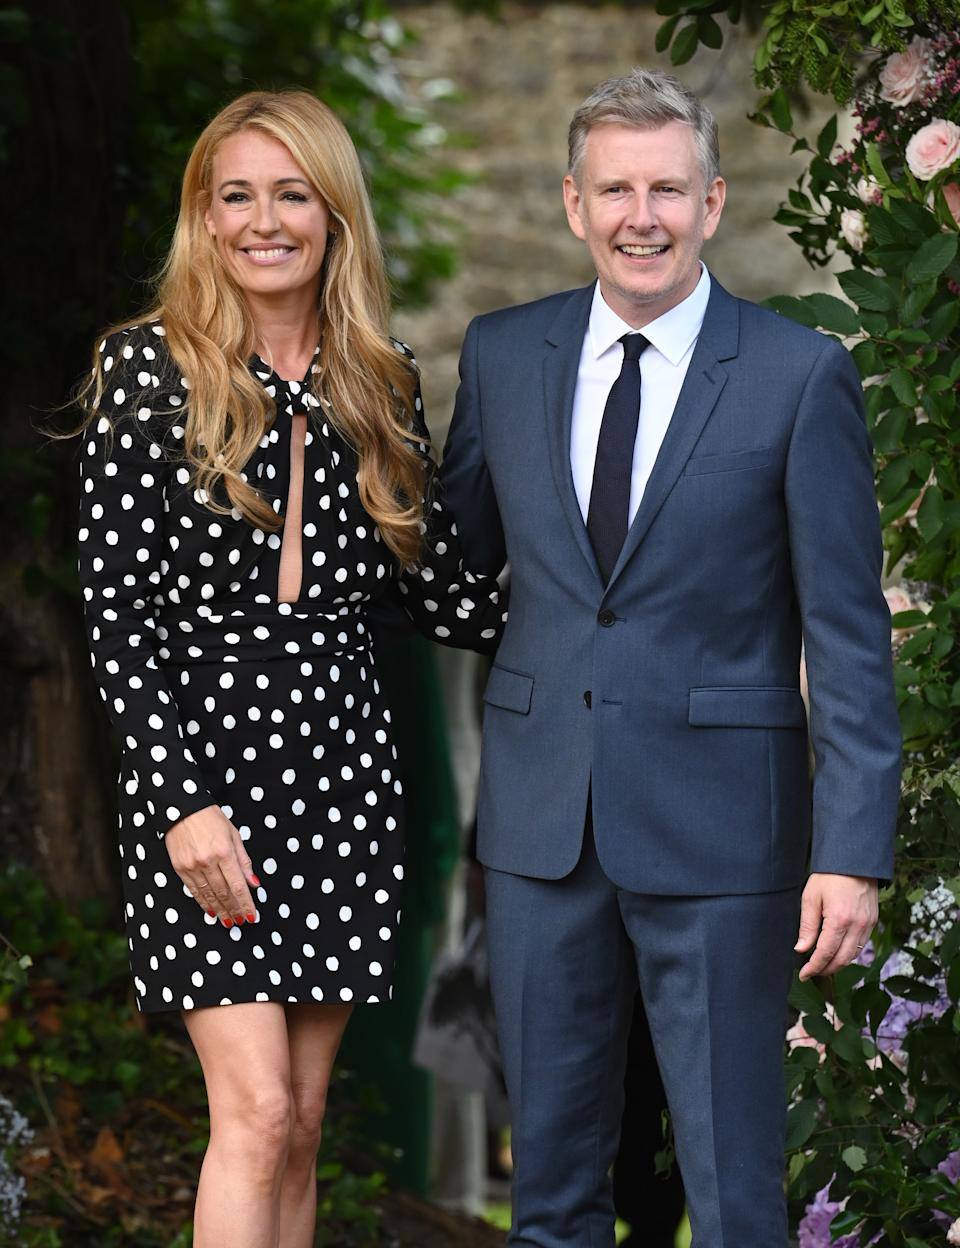 The star this week celebrated her ninth wedding anniversary with husband Patrick Kielty. (Getty Images)